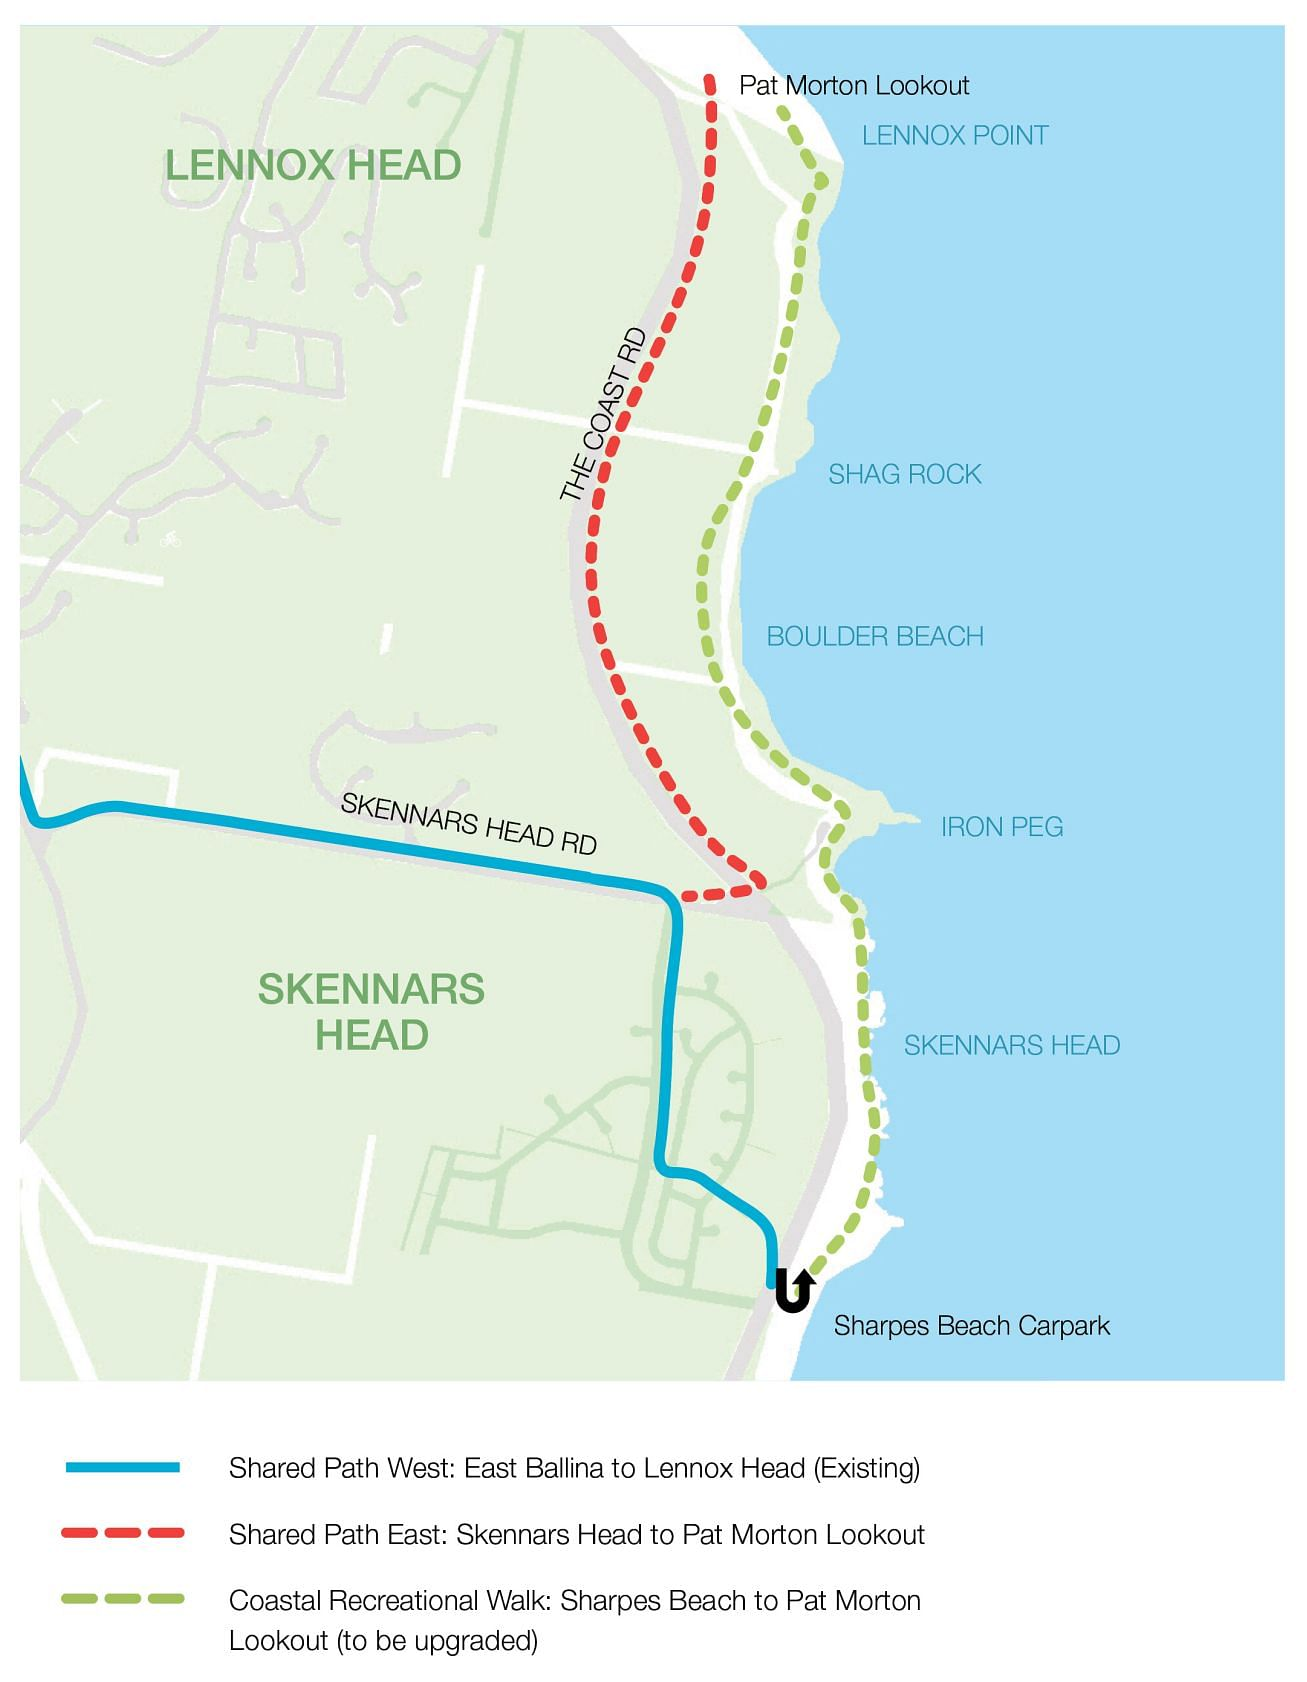 map of the shared pathway from Ballina to Lennox Head